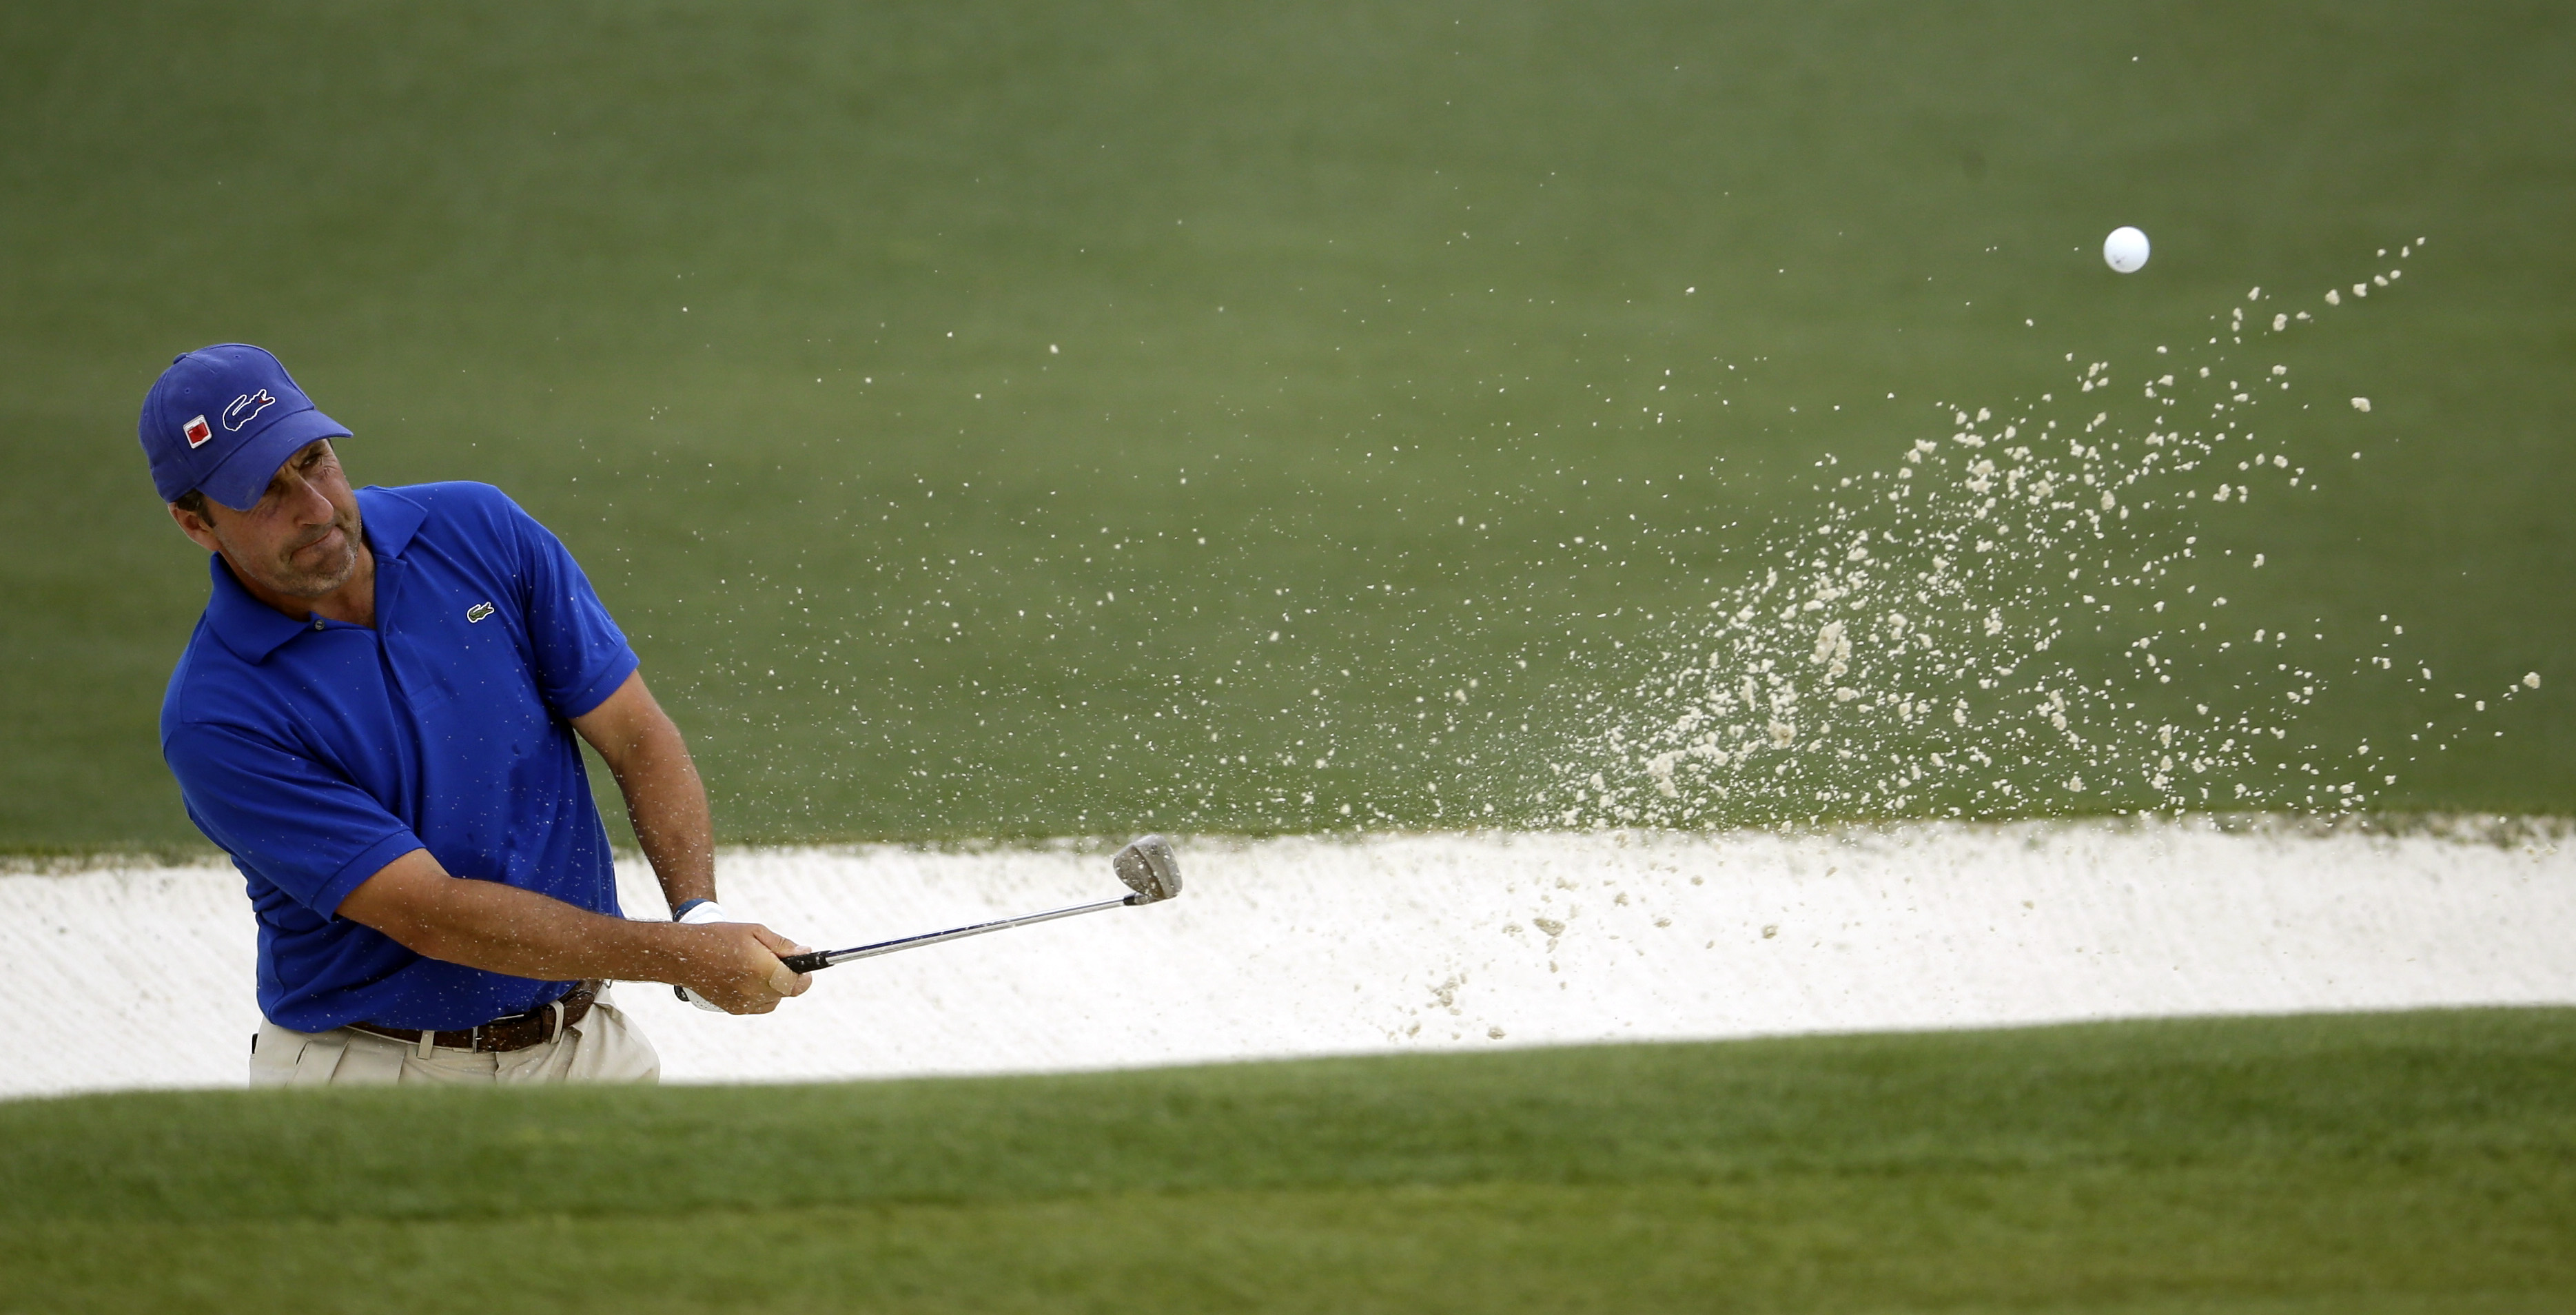 Jose Maria Olazabal, of Spain, hits to the second green during the second round of the Masters golf tournament Friday, April 10, 2015, in Augusta, Ga. (AP Photo/Darron Cummings)